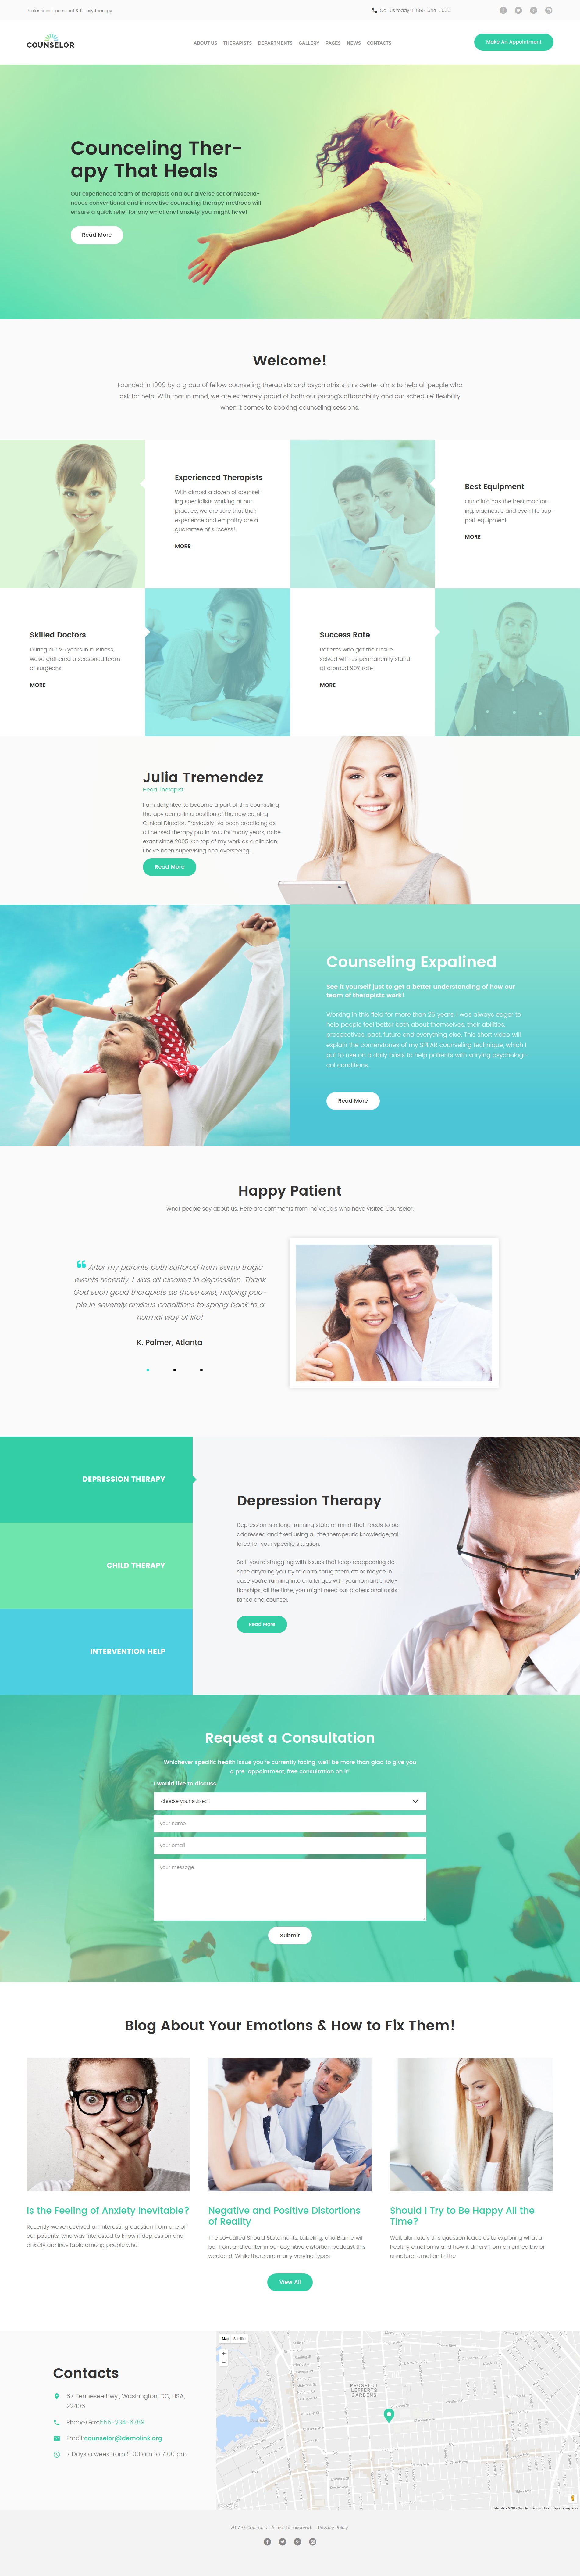 Counselor - Counseling Therapy Center Responsive №63388 - скриншот